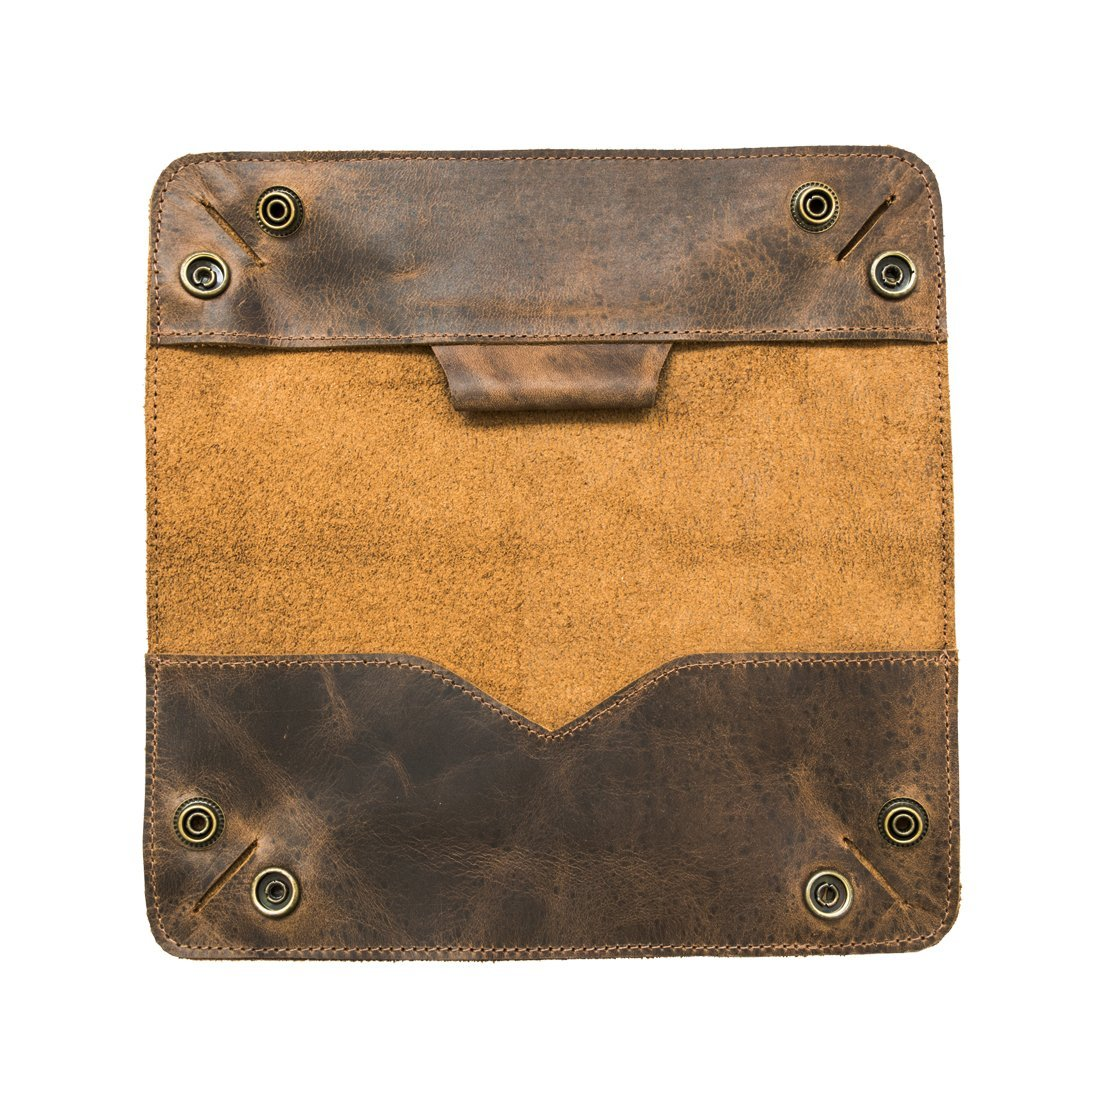 Leather Tray Pencil Case Handmade by Hide & Drink :: Bourbon Brown   B01GEOZ406